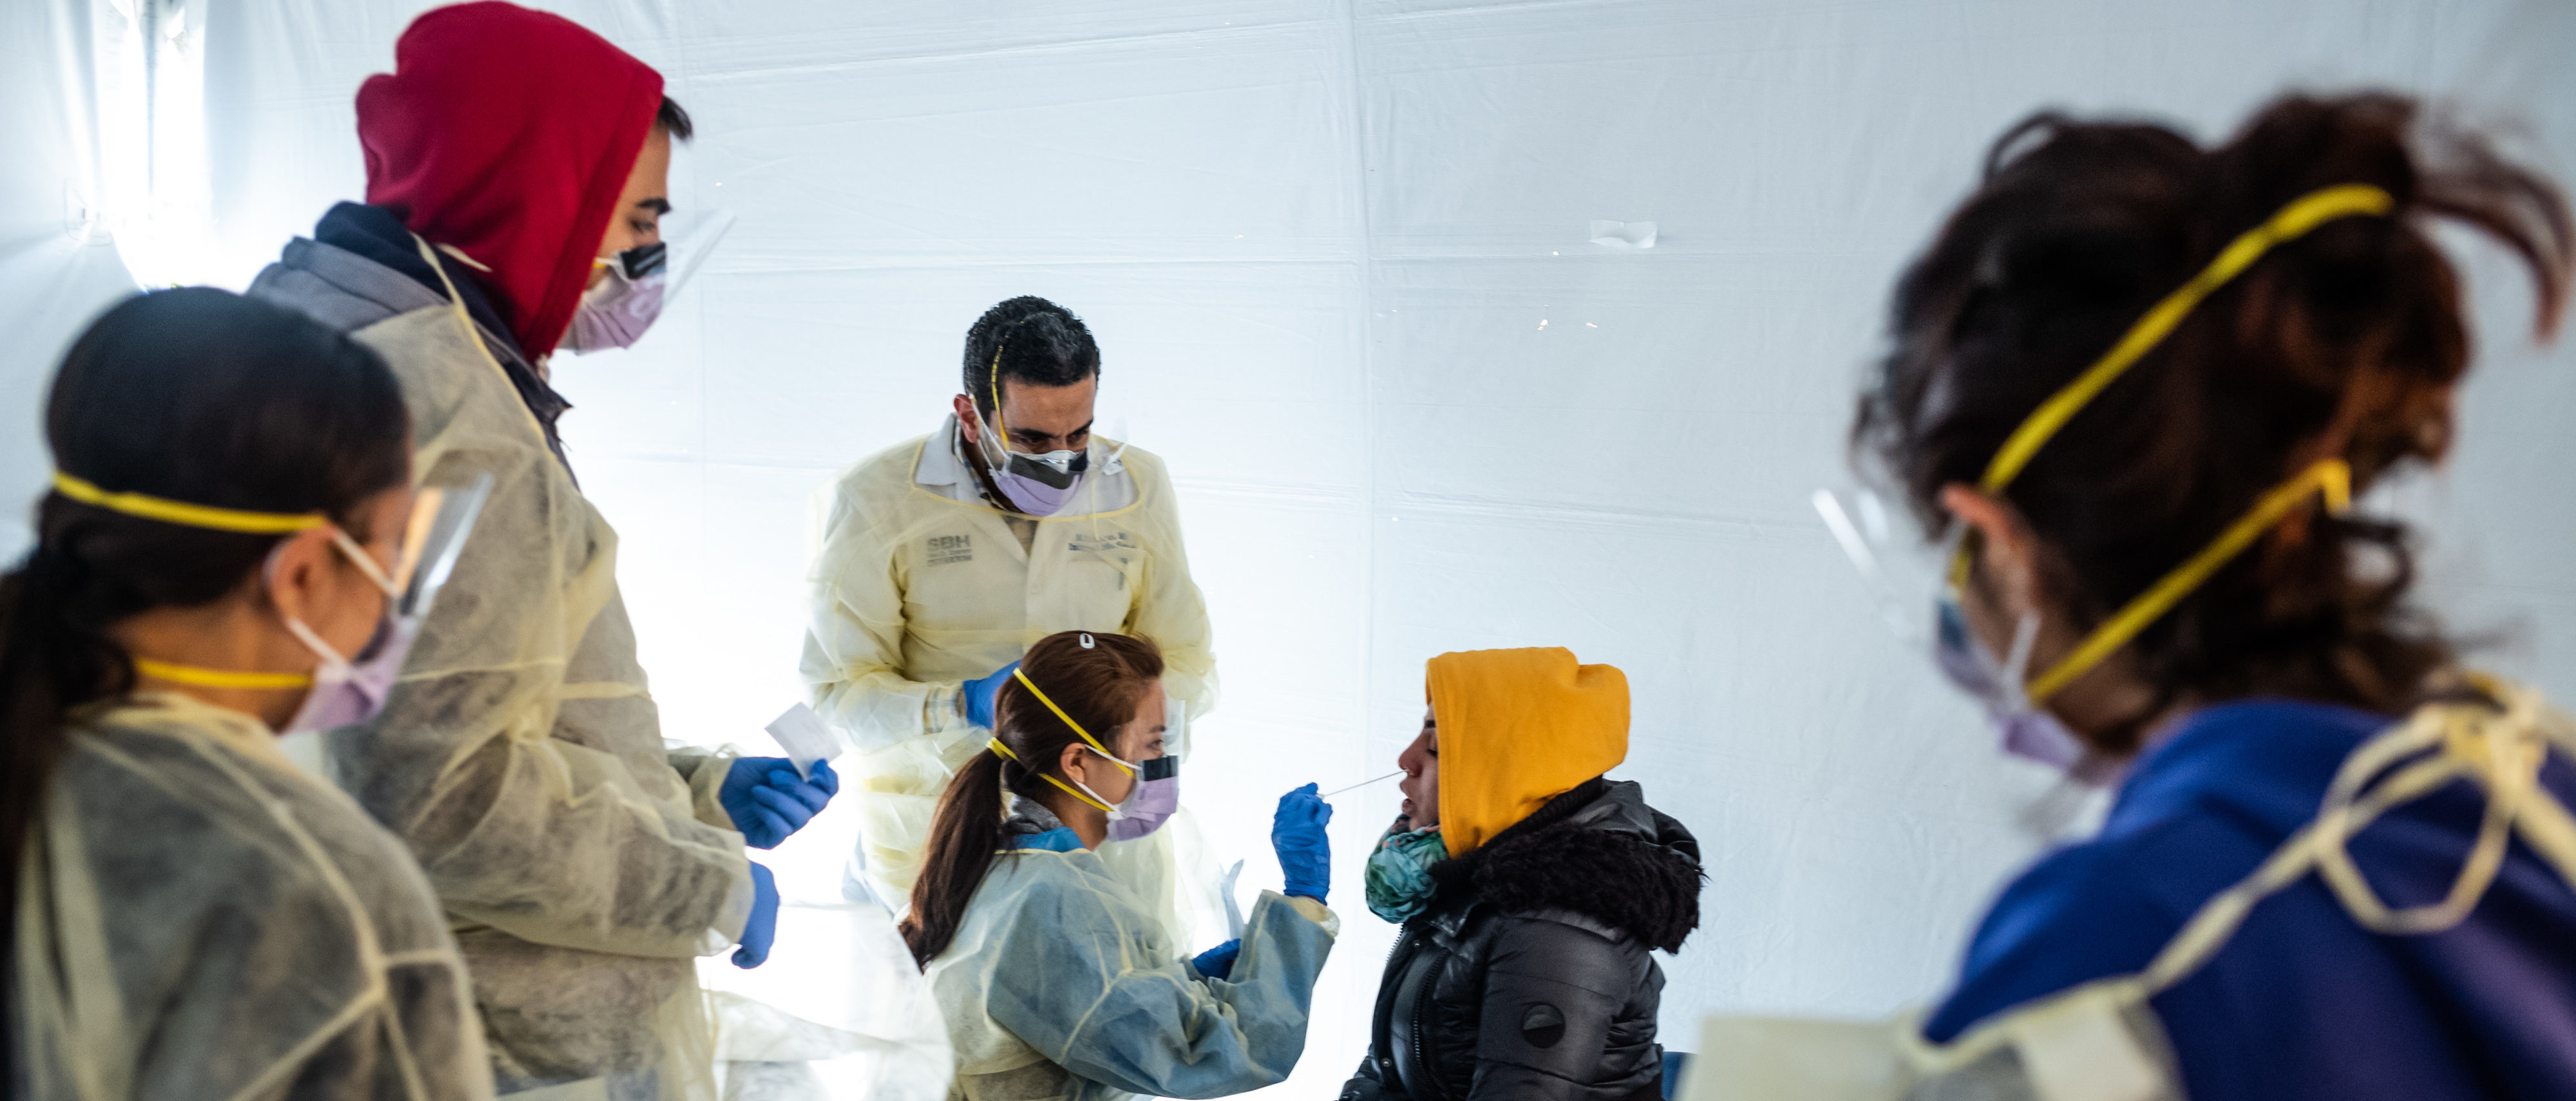 Doctors test hospital staff with flu-like symptoms for coronavirus (COVID-19) in set-up tents to triage possible COVID-19 patients. (Photo by Misha Friedman/Getty Images)